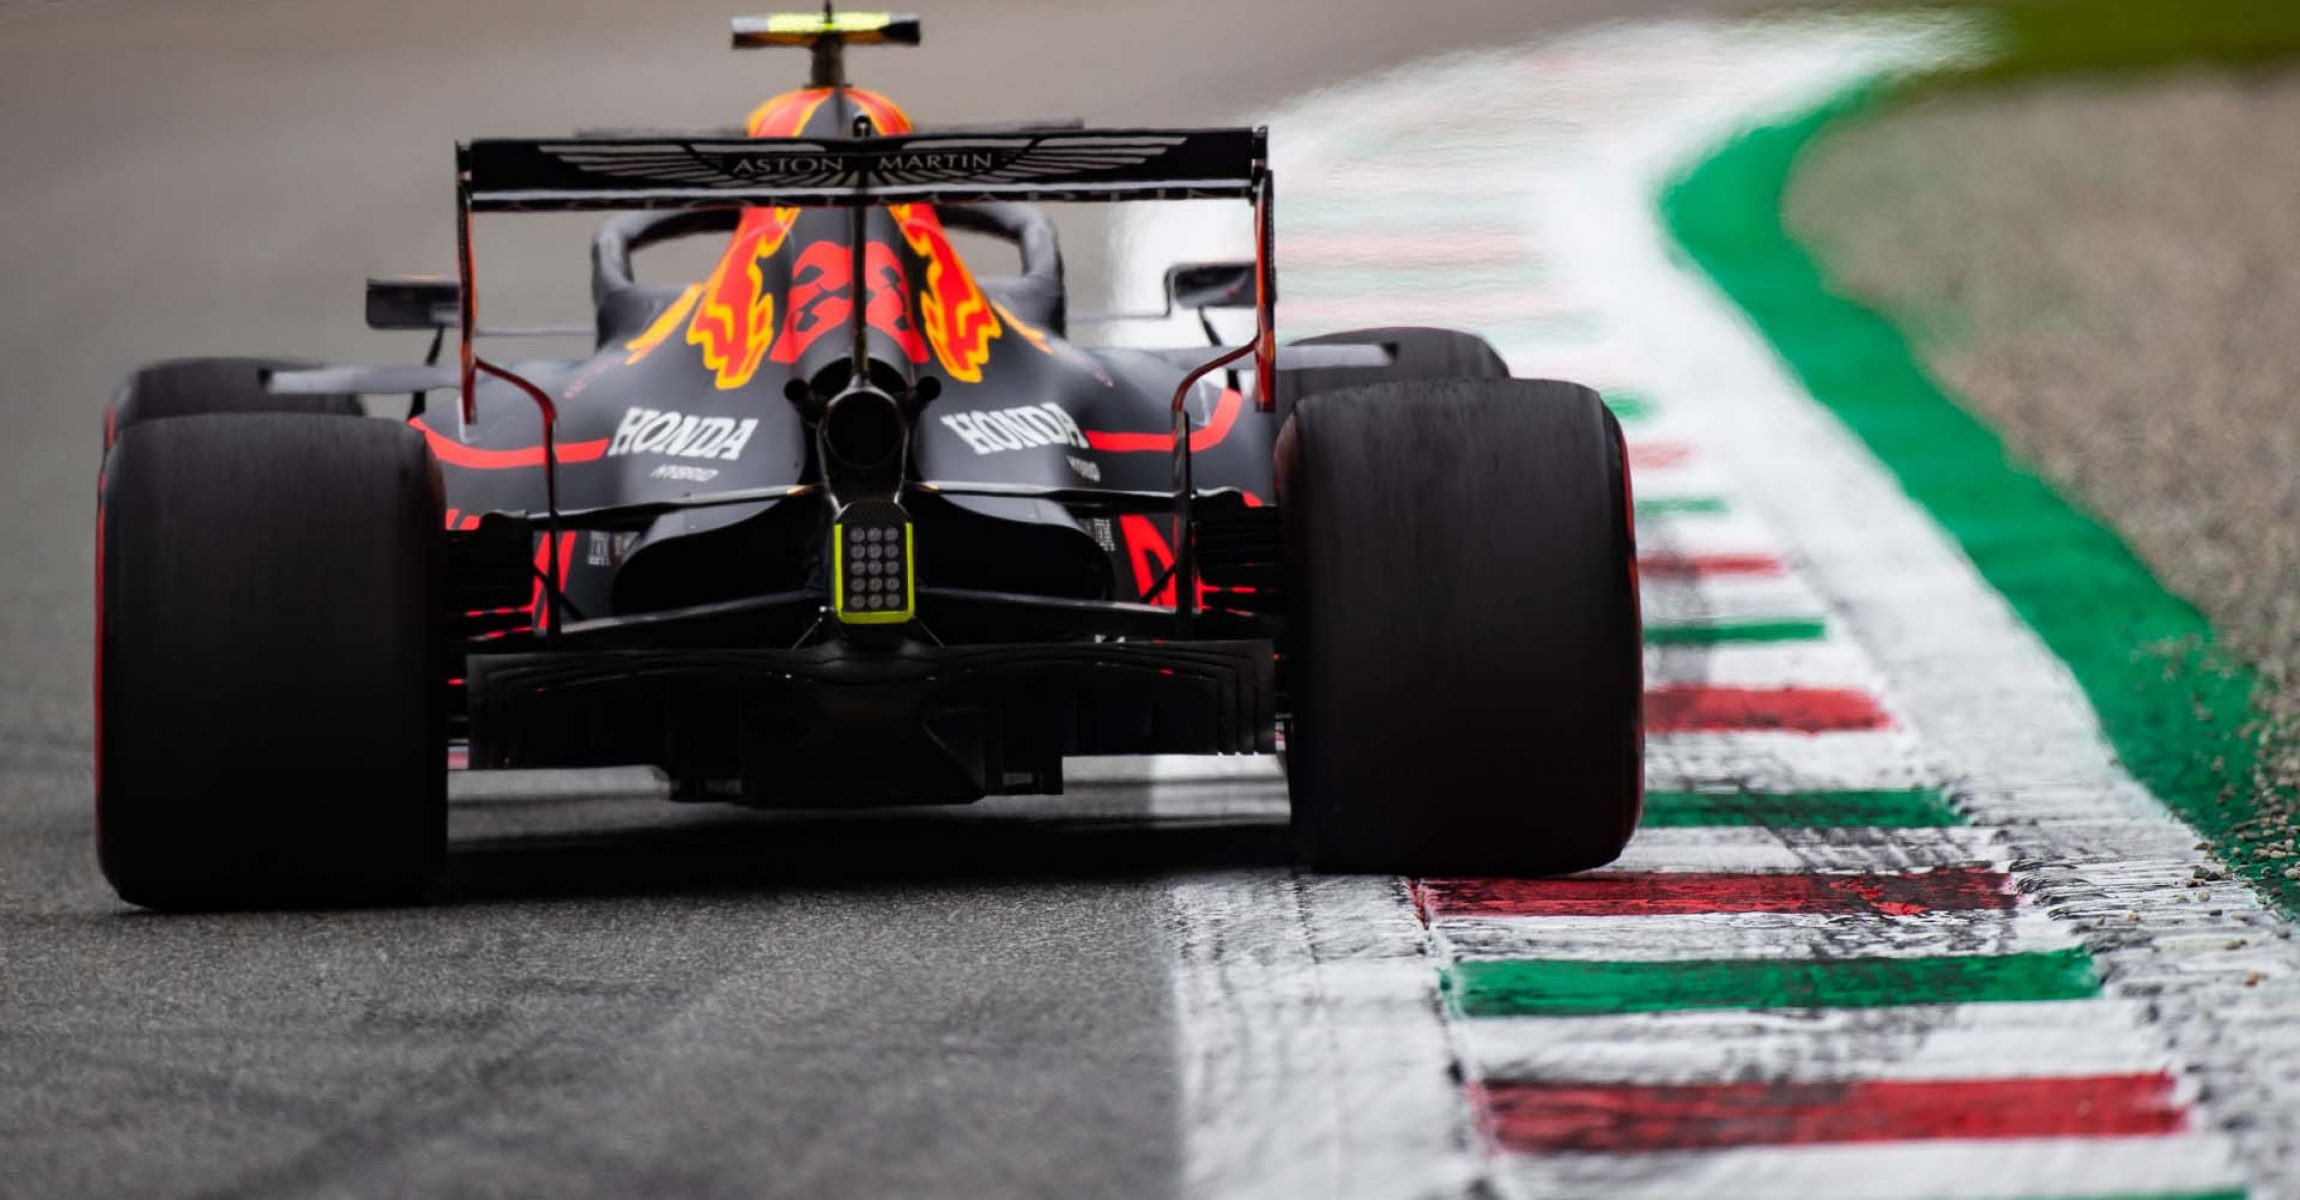 MONZA, ITALY - SEPTEMBER 06: Alexander Albon of Thailand driving the (23) Aston Martin Red Bull Racing RB15 on track during practice for the F1 Grand Prix of Italy at Autodromo di Monza on September 06, 2019 in Monza, Italy. (Photo by Lars Baron/Getty Images) // Getty Images / Red Bull Content Pool // AP-21G6K2TN12111 // Usage for editorial use only //